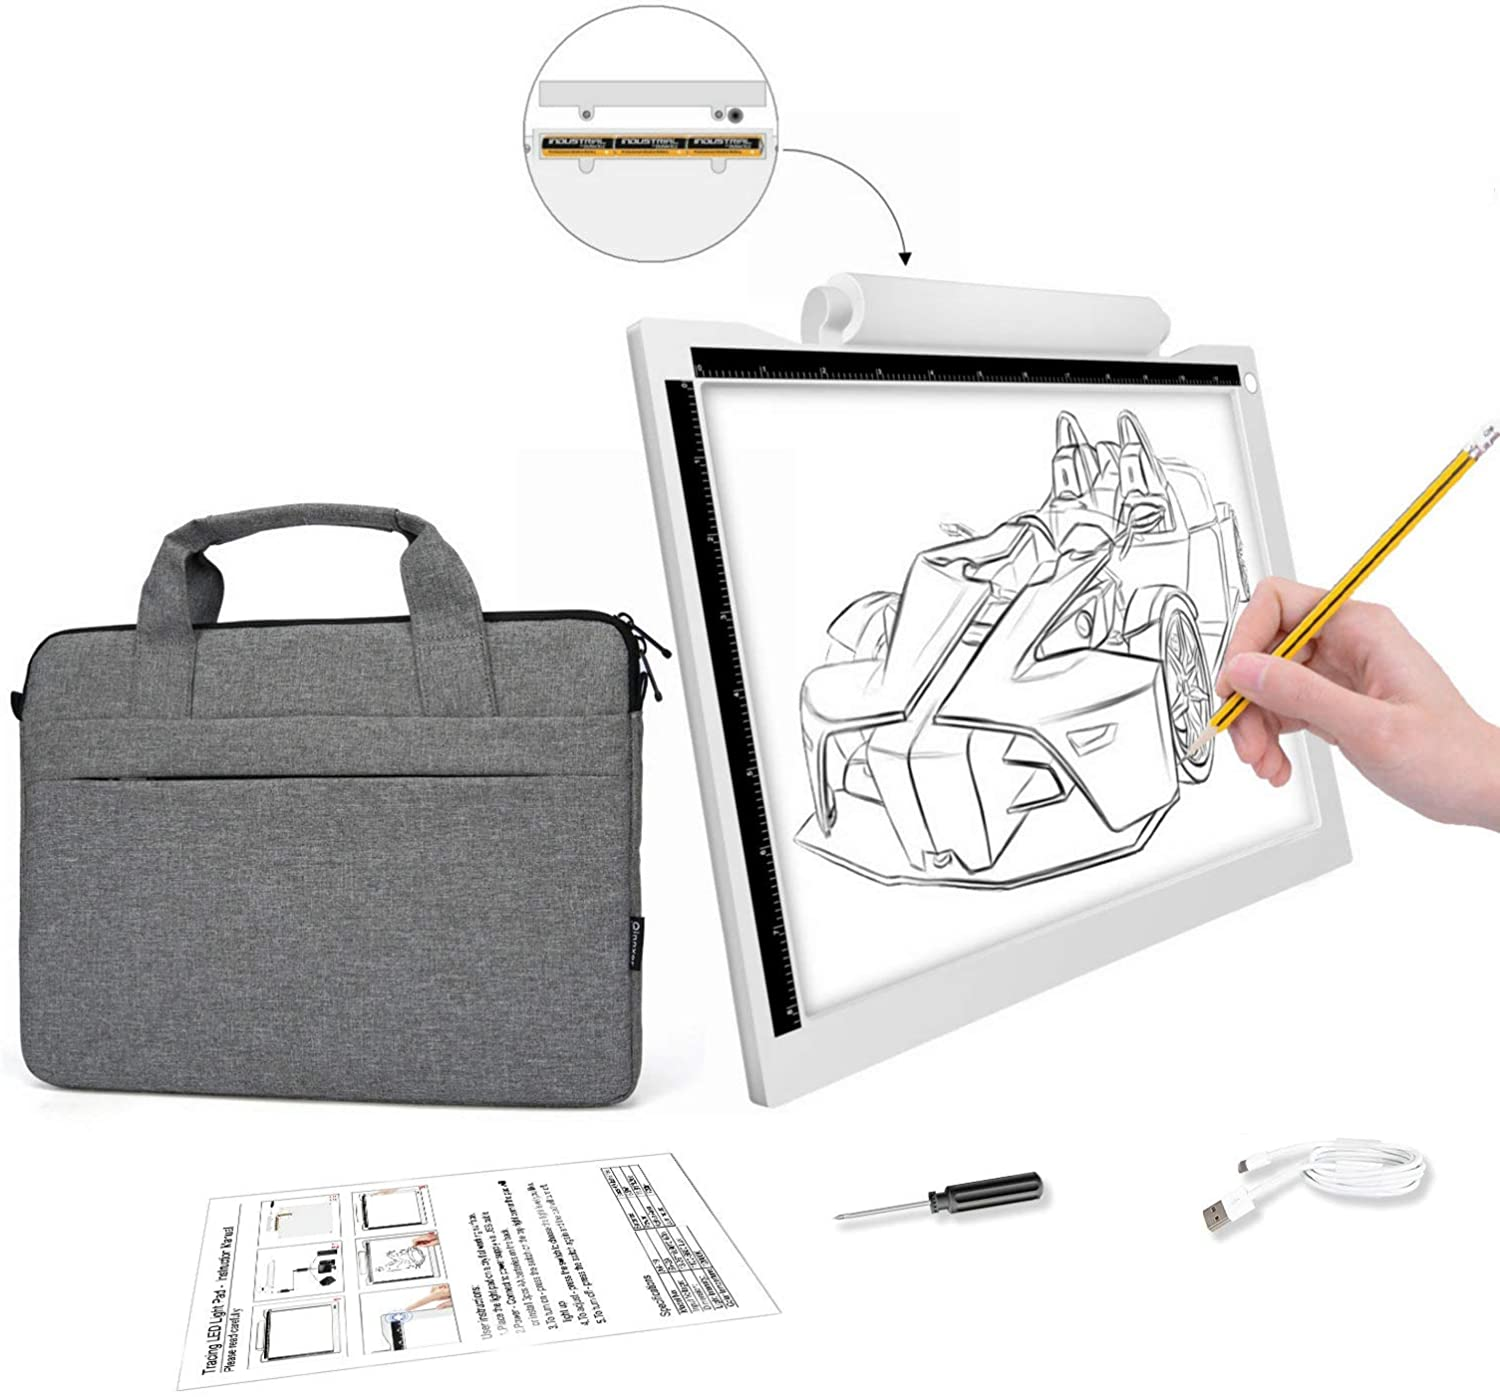 A4 Light Box for Tracing Portable Battery Power Cable 5600 Lux Dimmable Brightness LED Artcraft Tracing Light Pad for Artists Drawing Animation Stencilling X-rayViewing (Light Box with Bag)